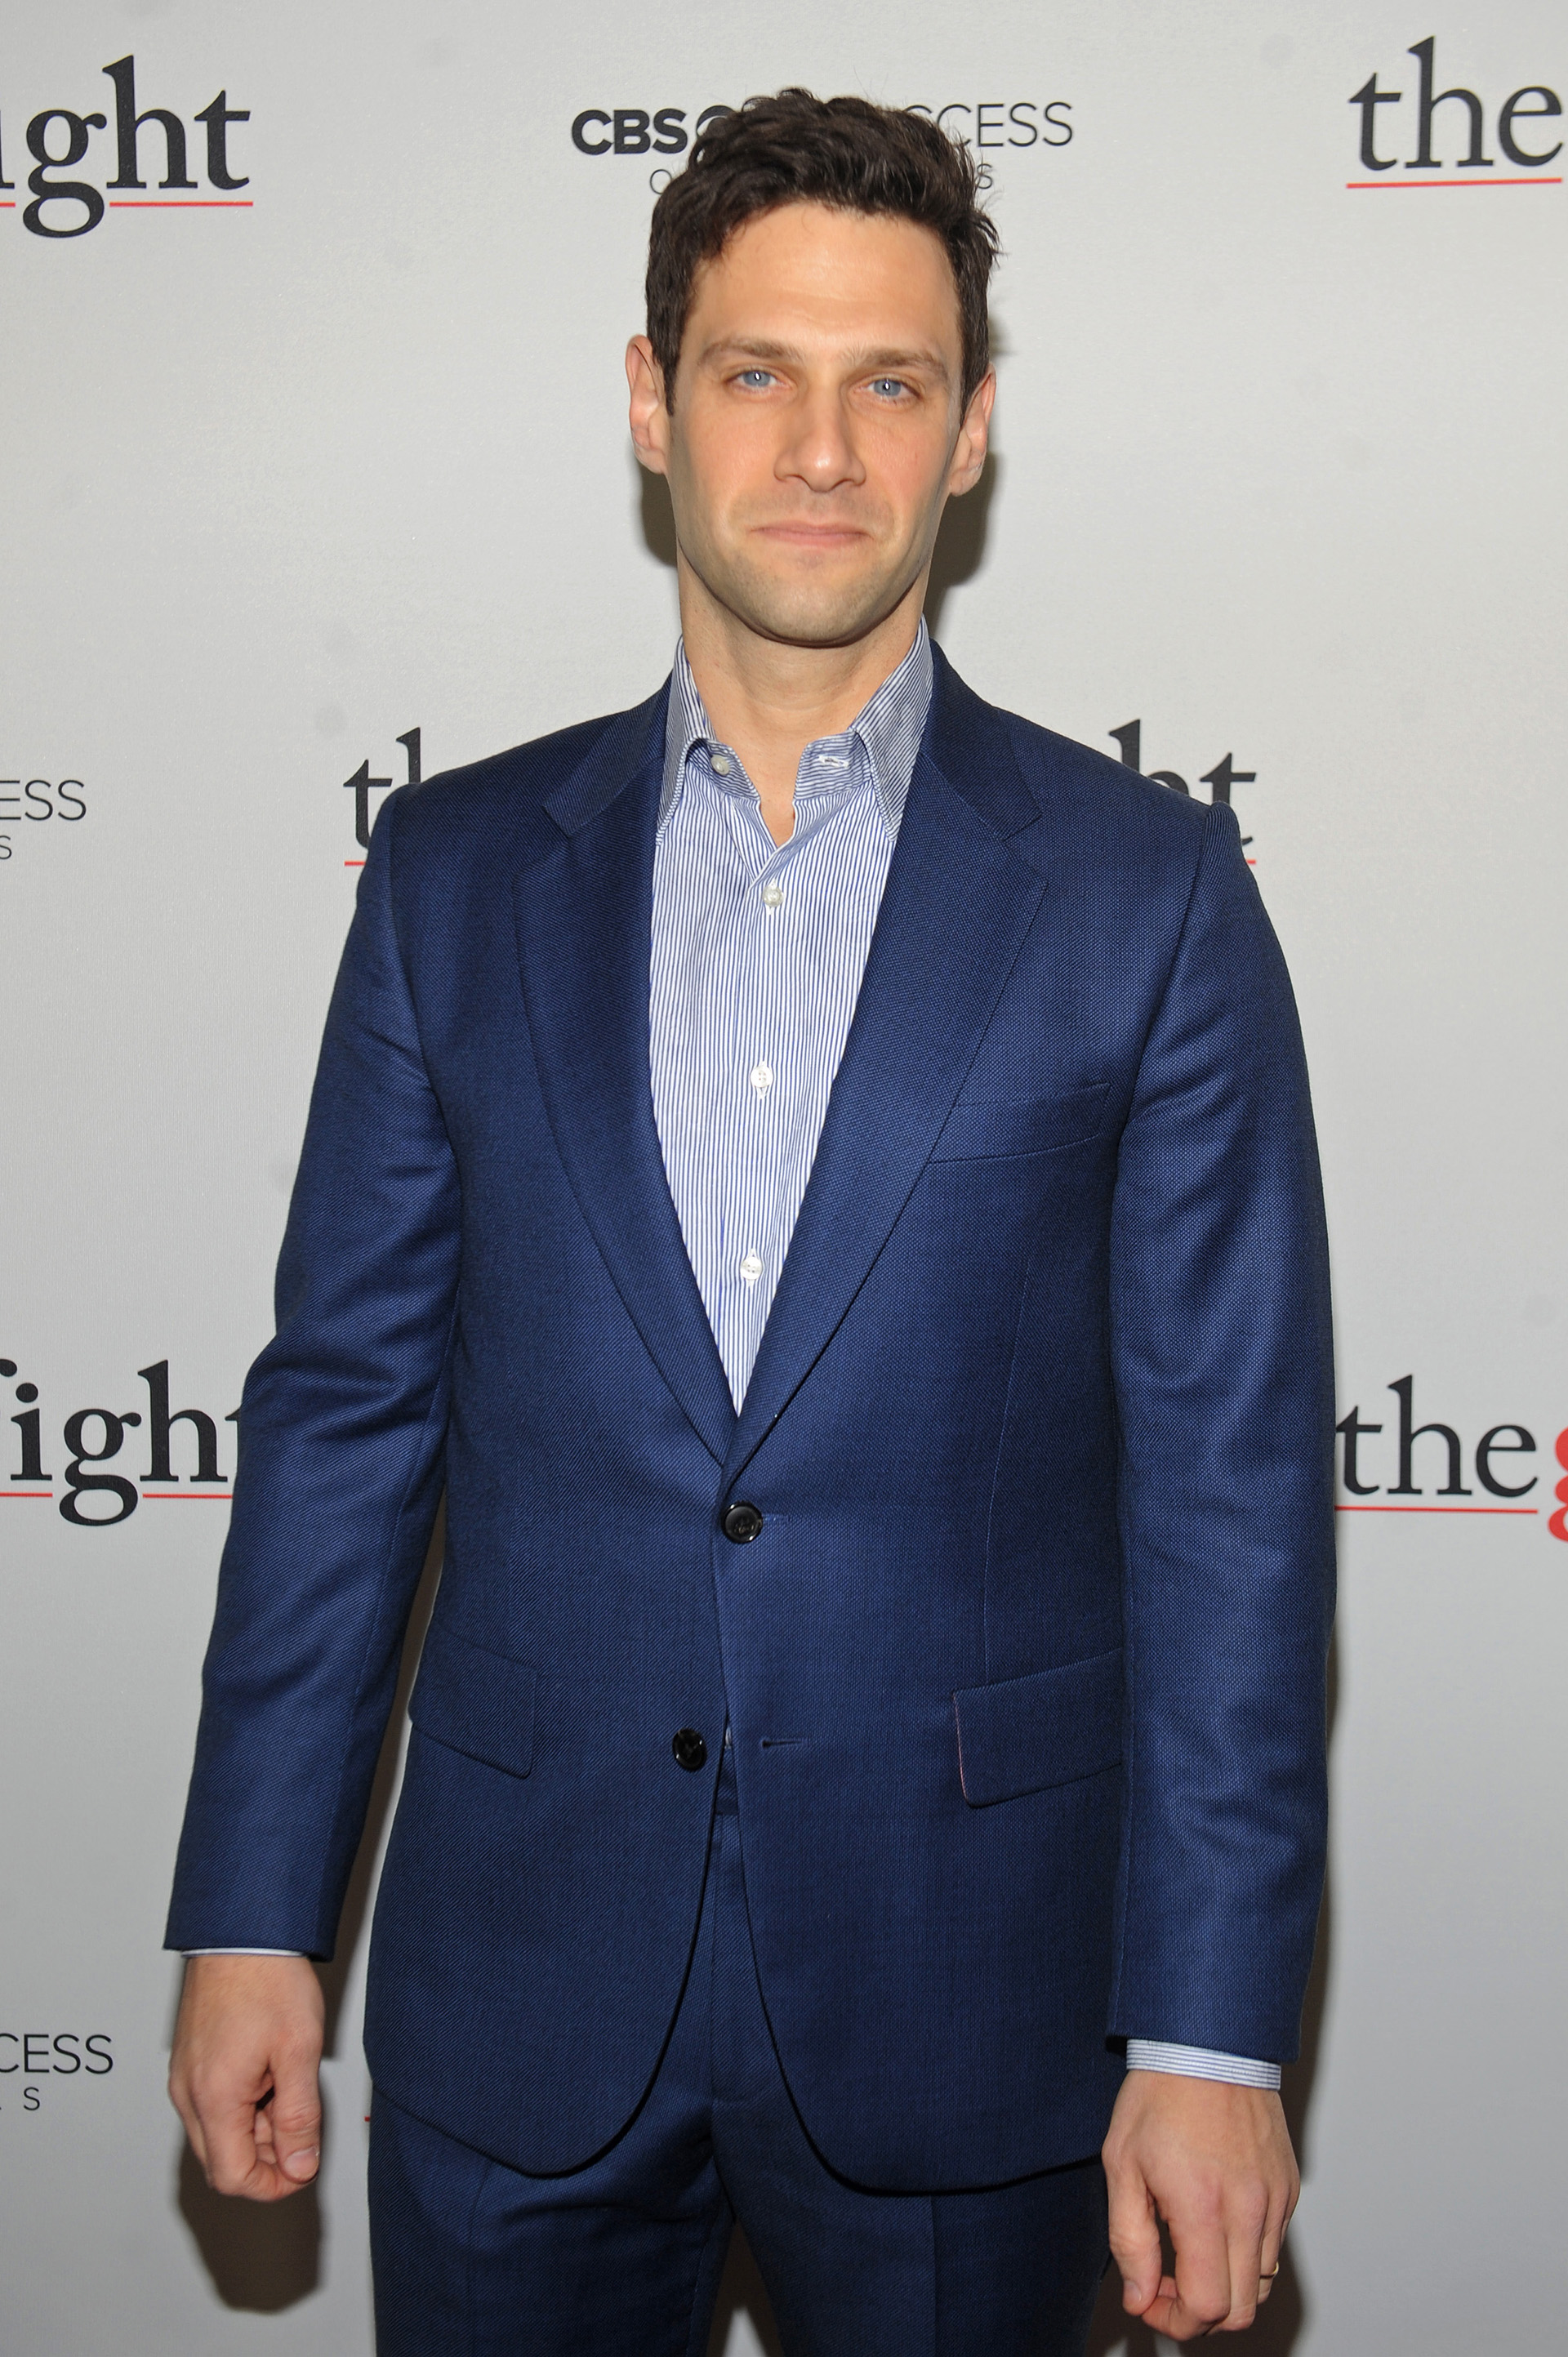 Justin Bartha is ready for action in a sleek, royal blue suit.